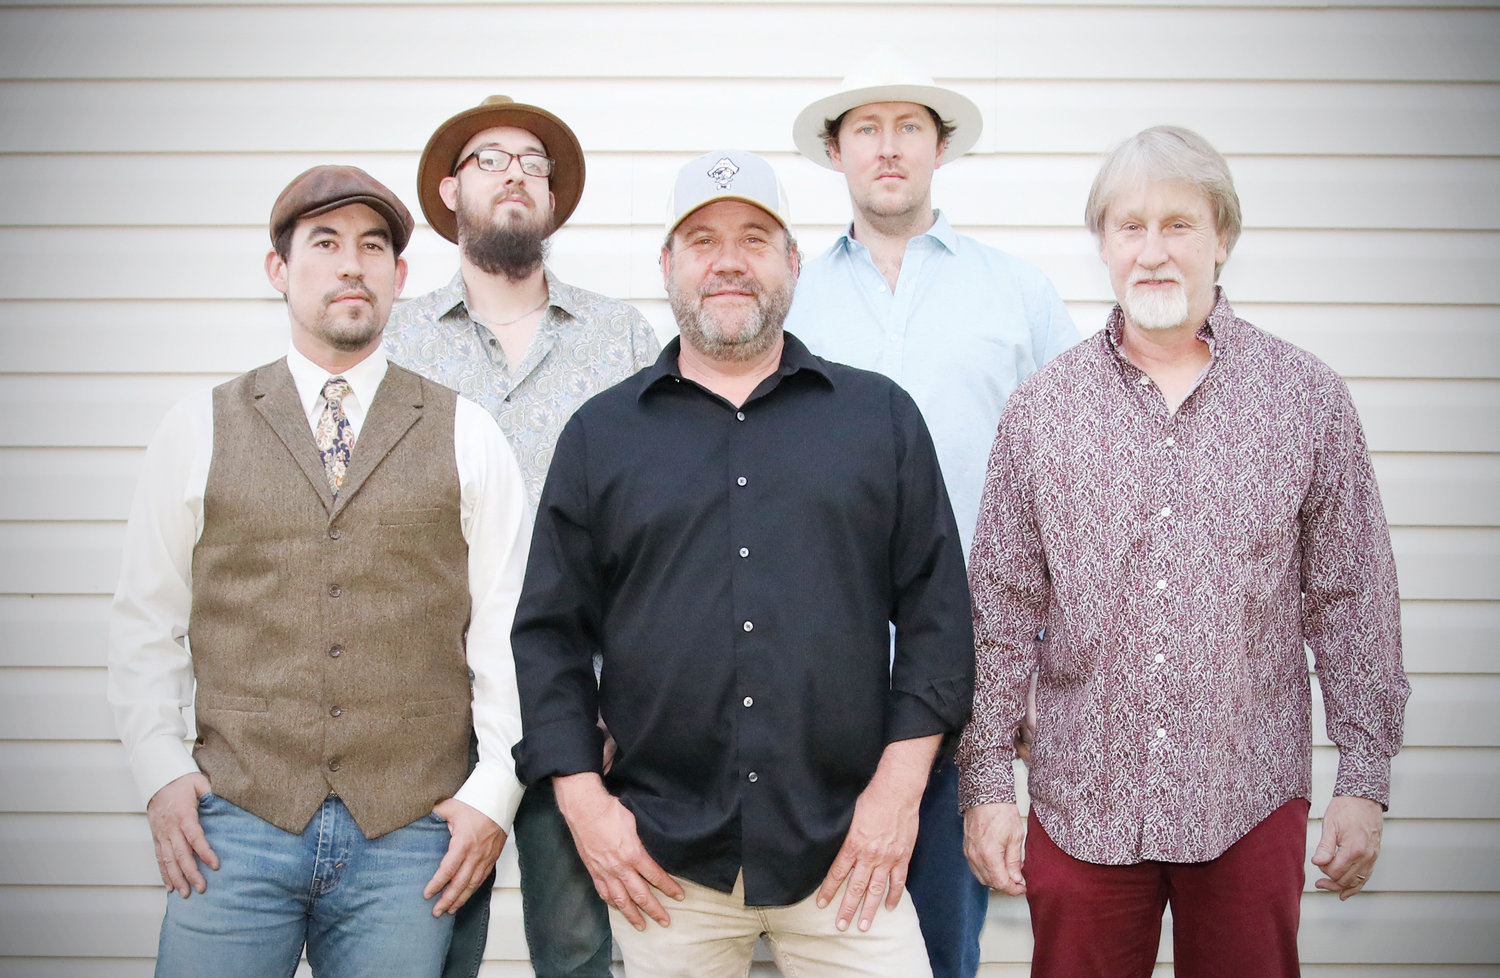 The popular act, Jim Quick and Coastline, is a recipient of multiple Carolina Music Awards, including 18 time Entertainer of the Year. Band members include Jim Quick, Casey Meyer, Daniel Anderson, Derek Arnold and Norman Allred. They will be in Benson Thursday, Aug. 8, for the Sundown in Downtown concert event.